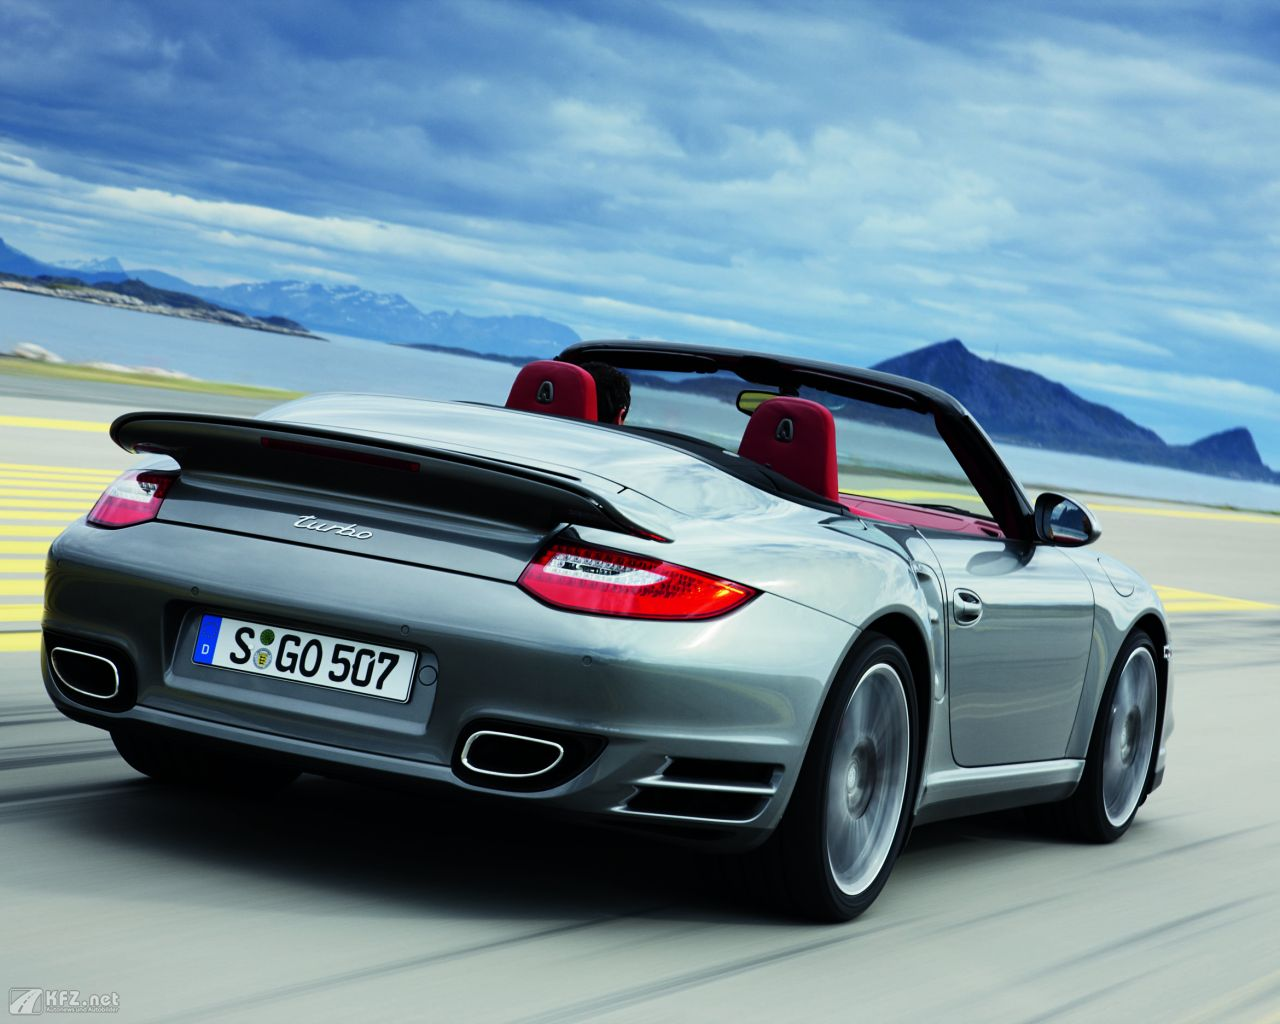 porsche-911-turbo-coupe-1280x1024-18